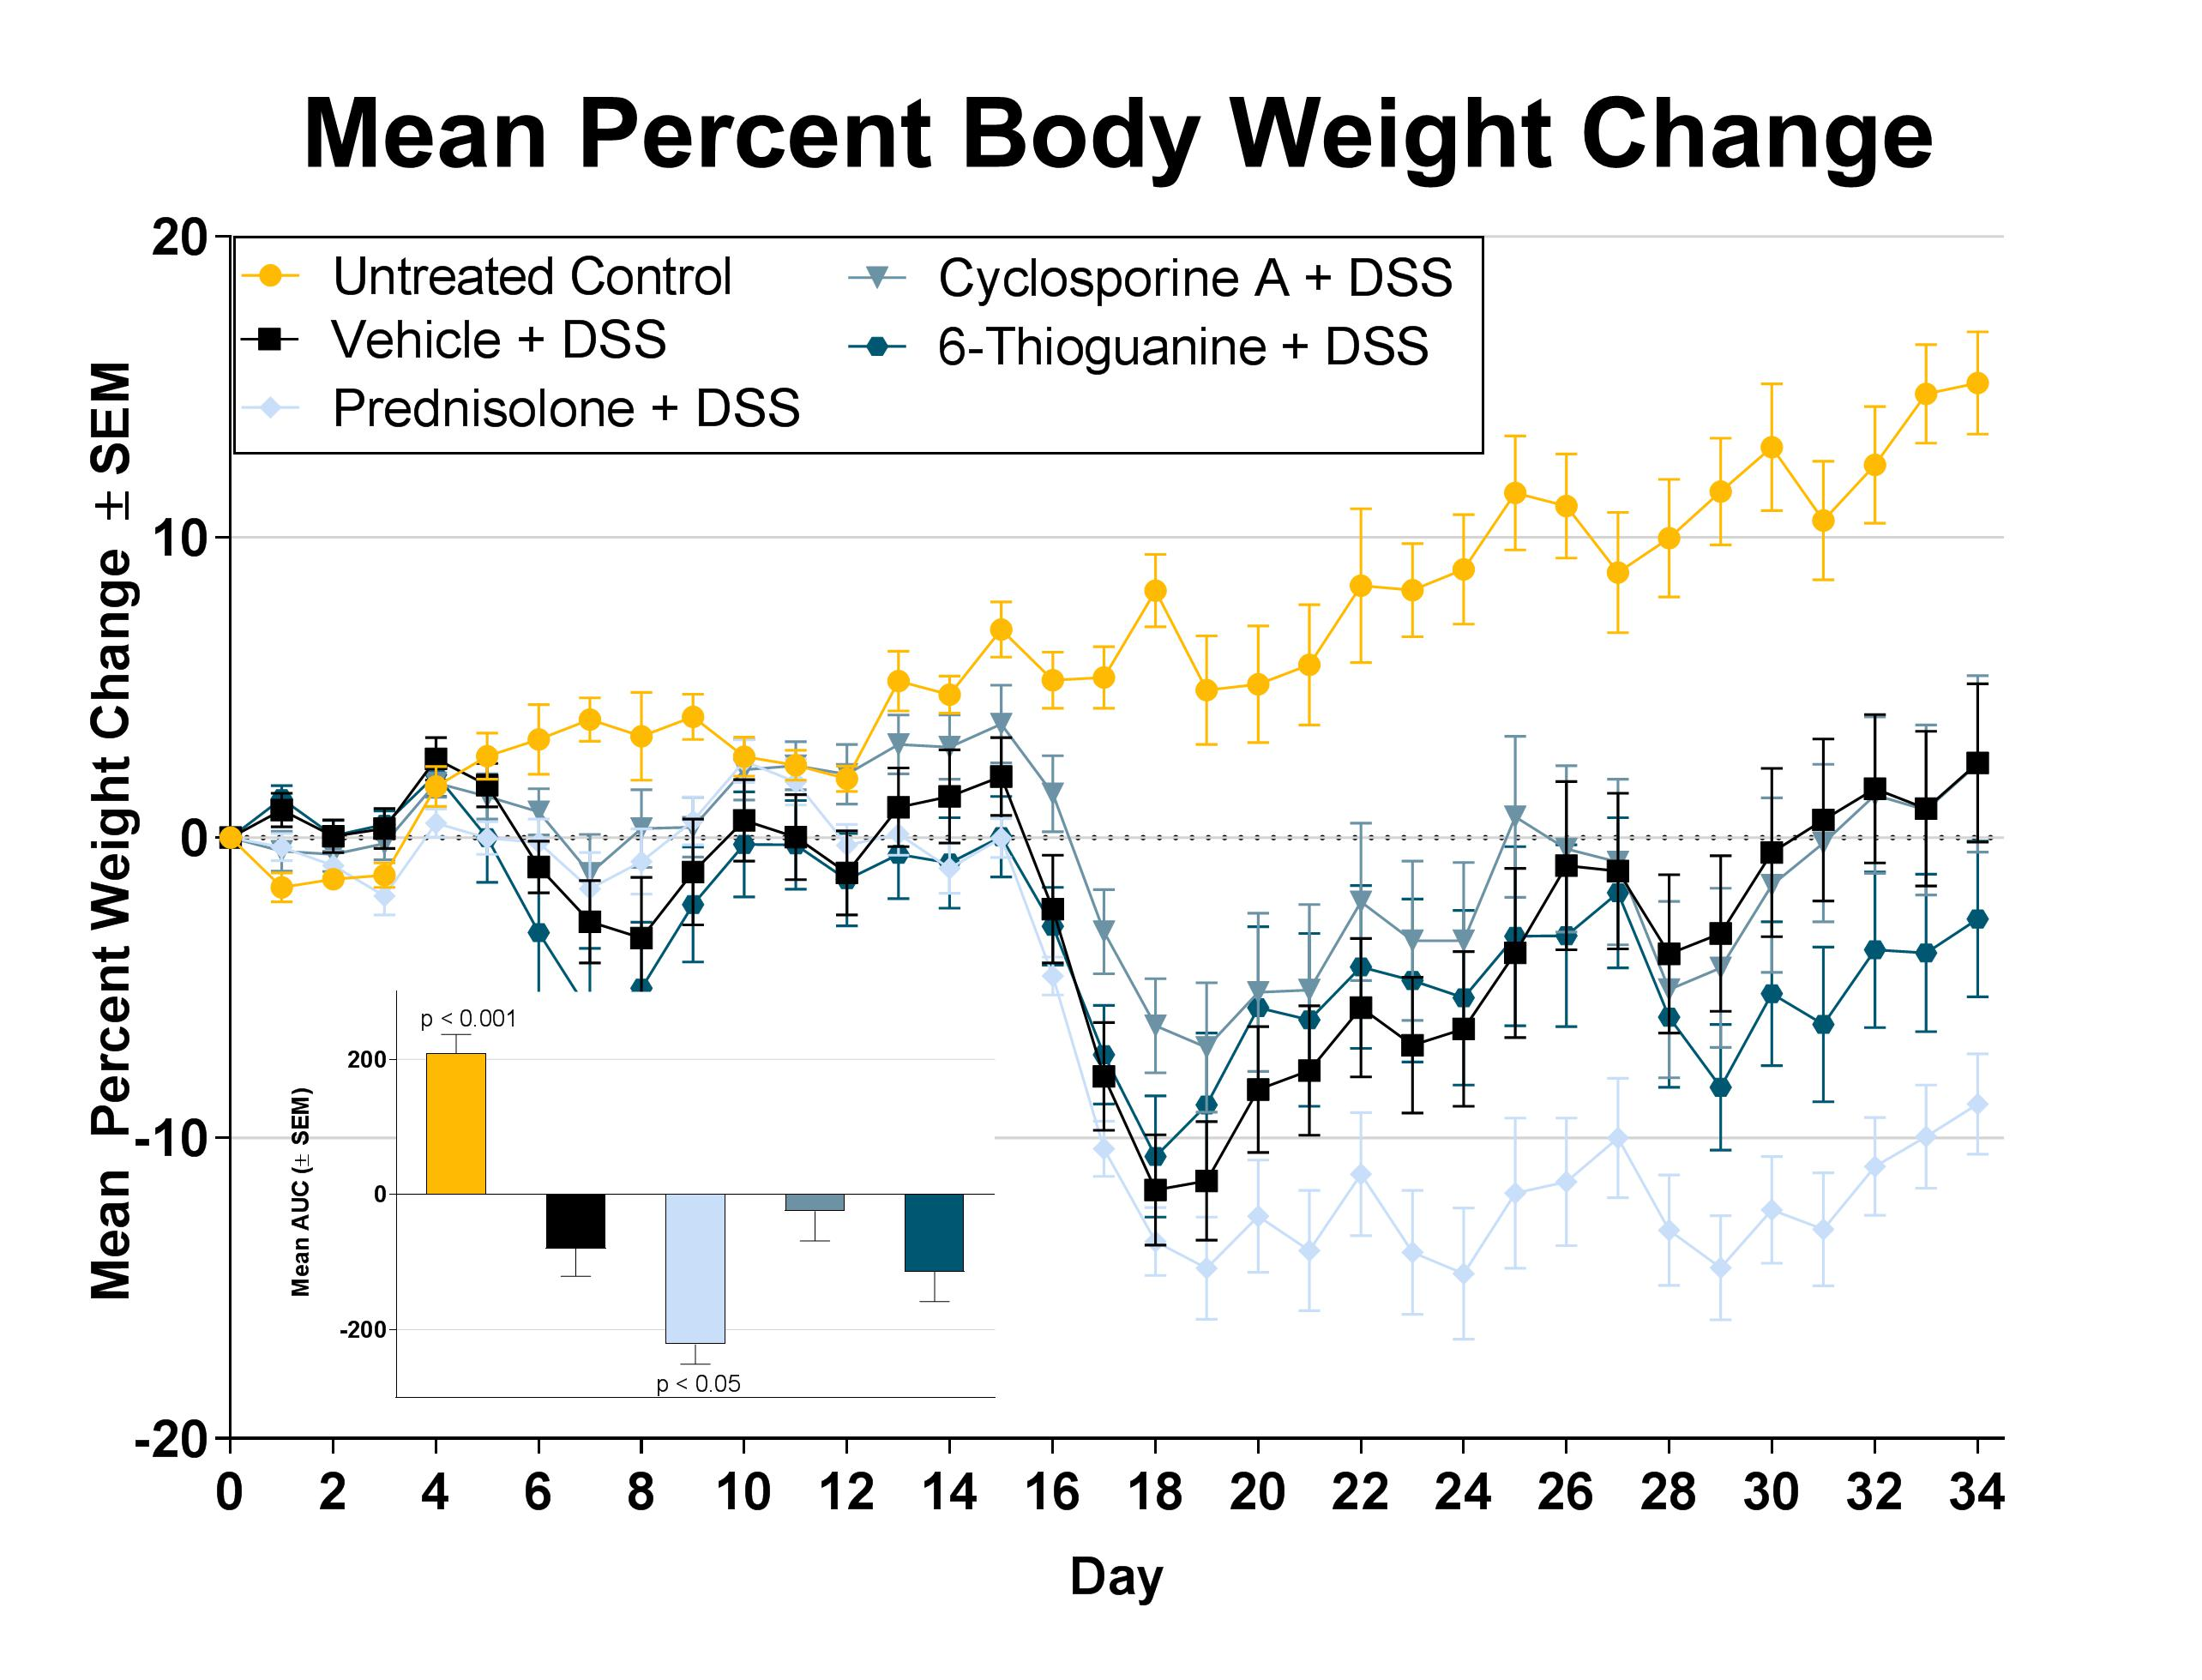 Mean percent body weight change